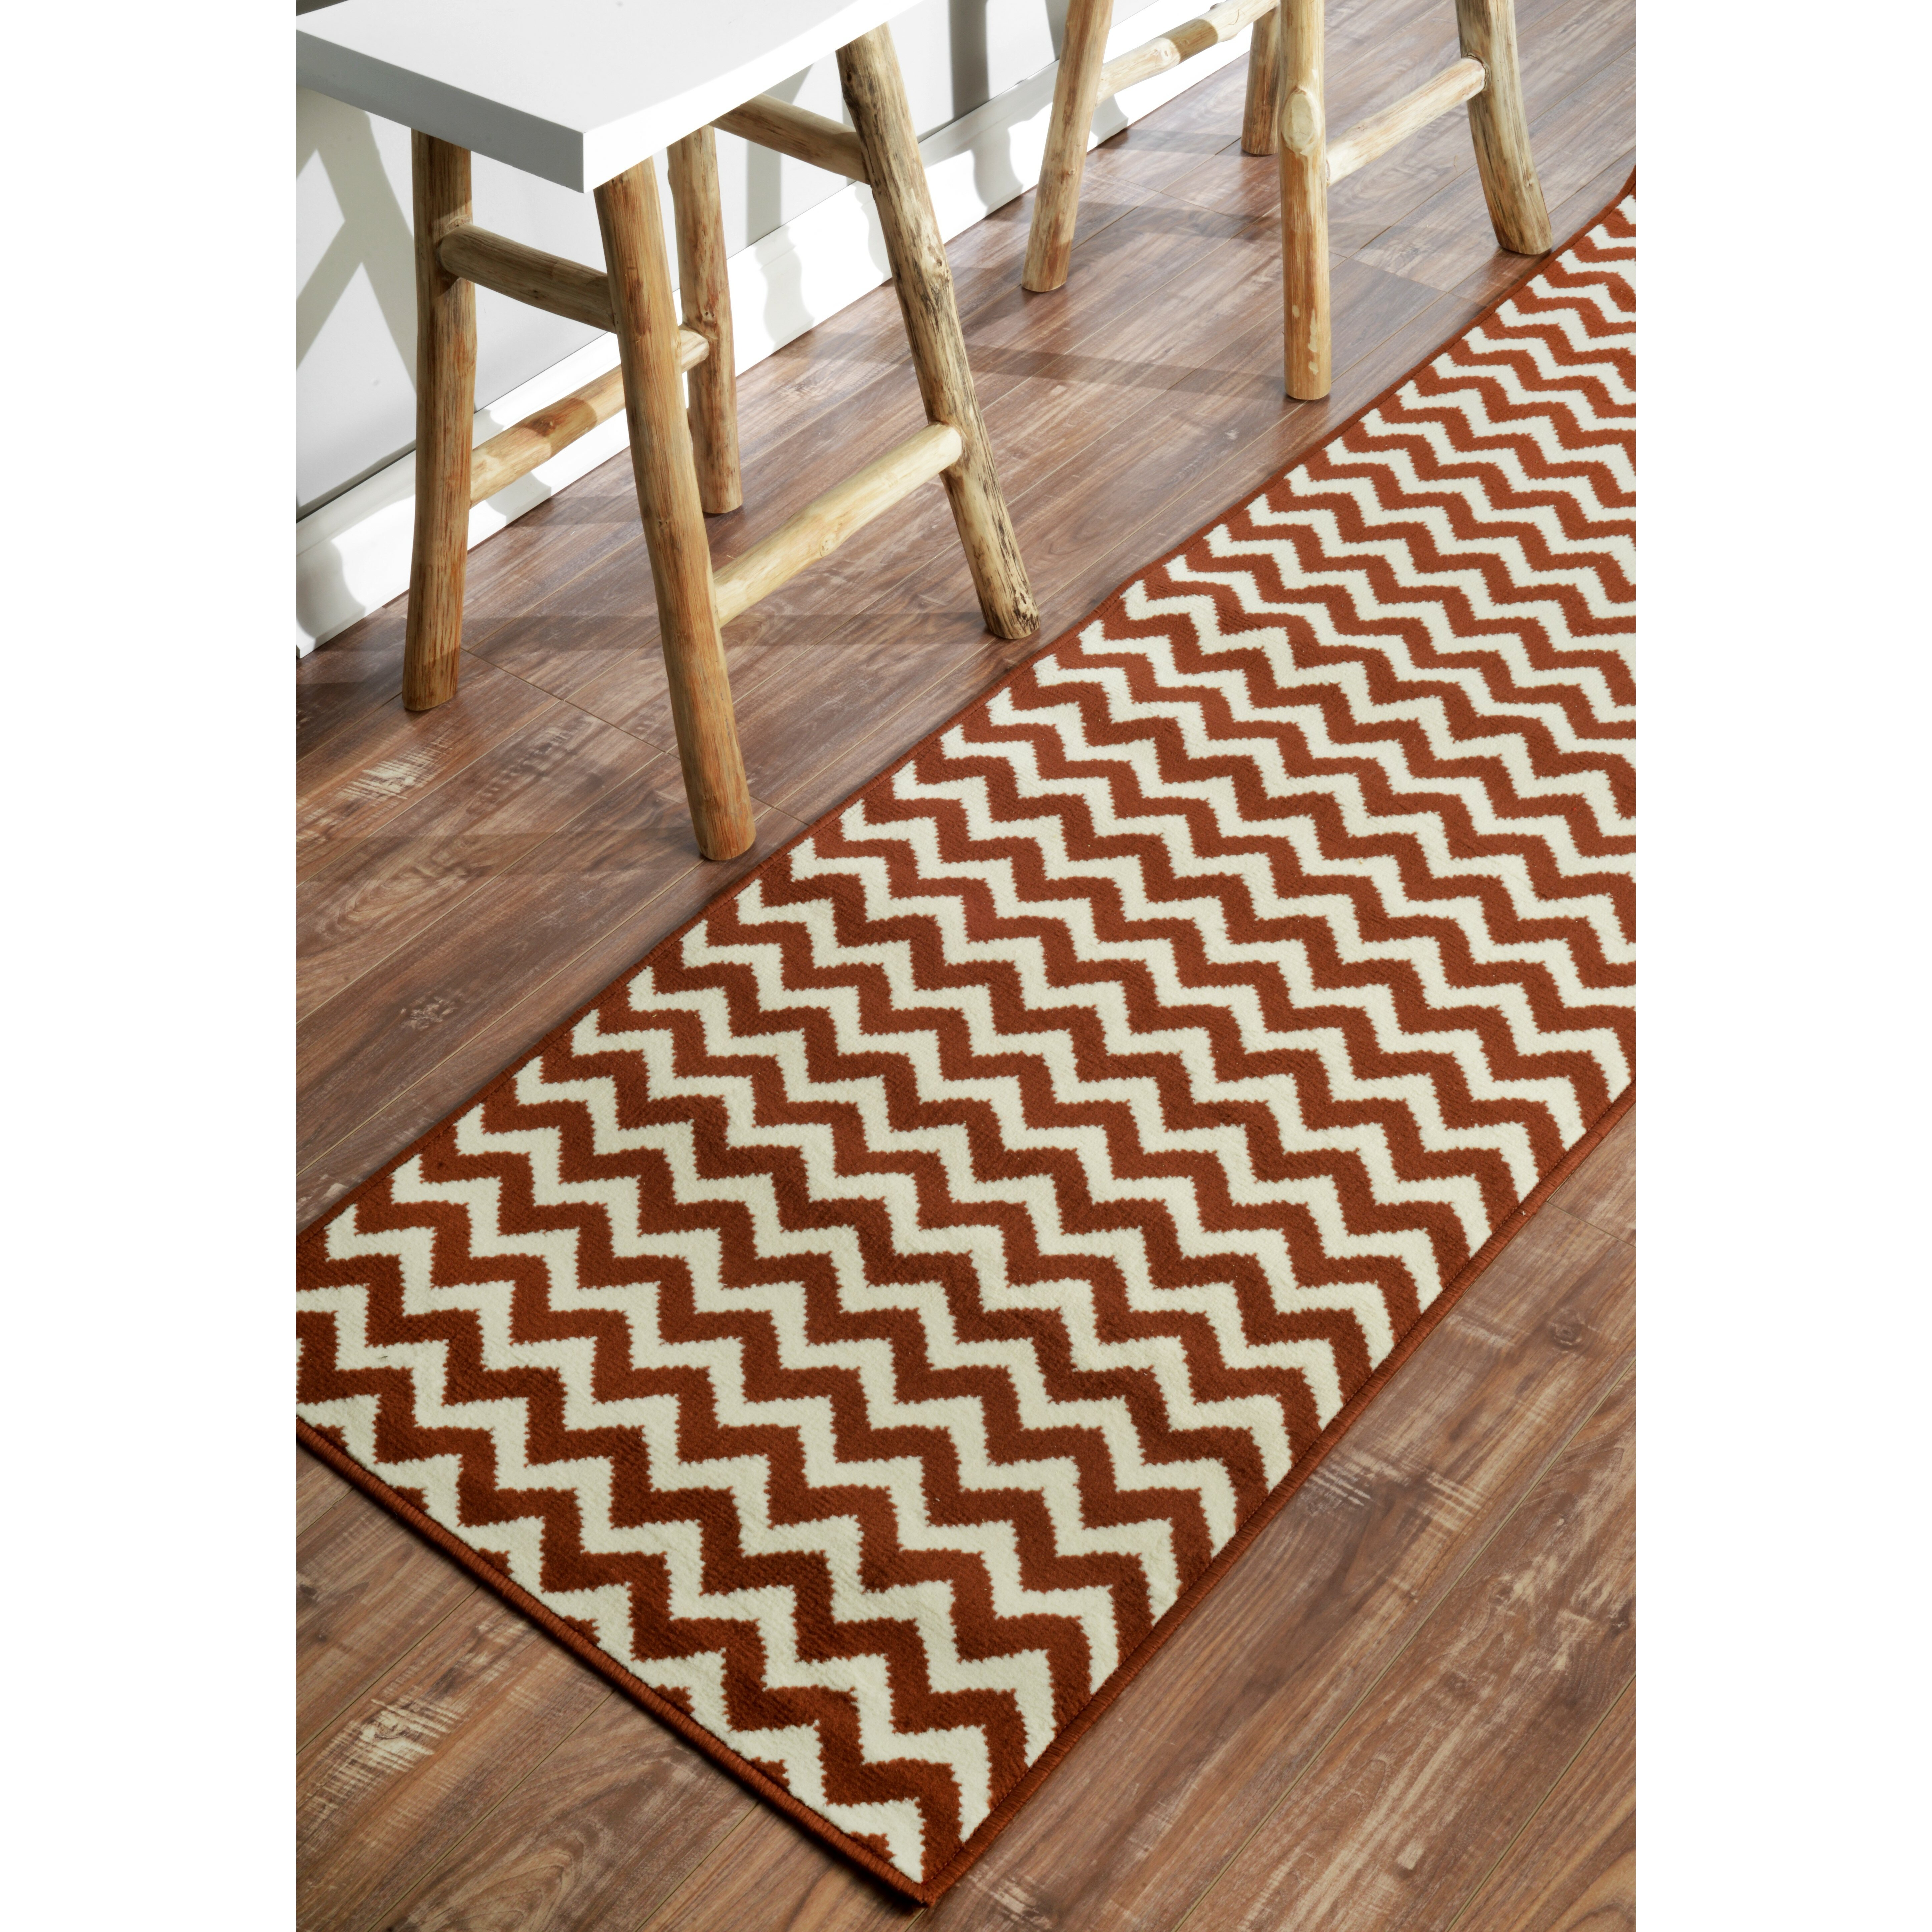 Chevron Knot Rug Ivory: NuLOOM Allure Brown/Ivory Chevron Area Rug & Reviews